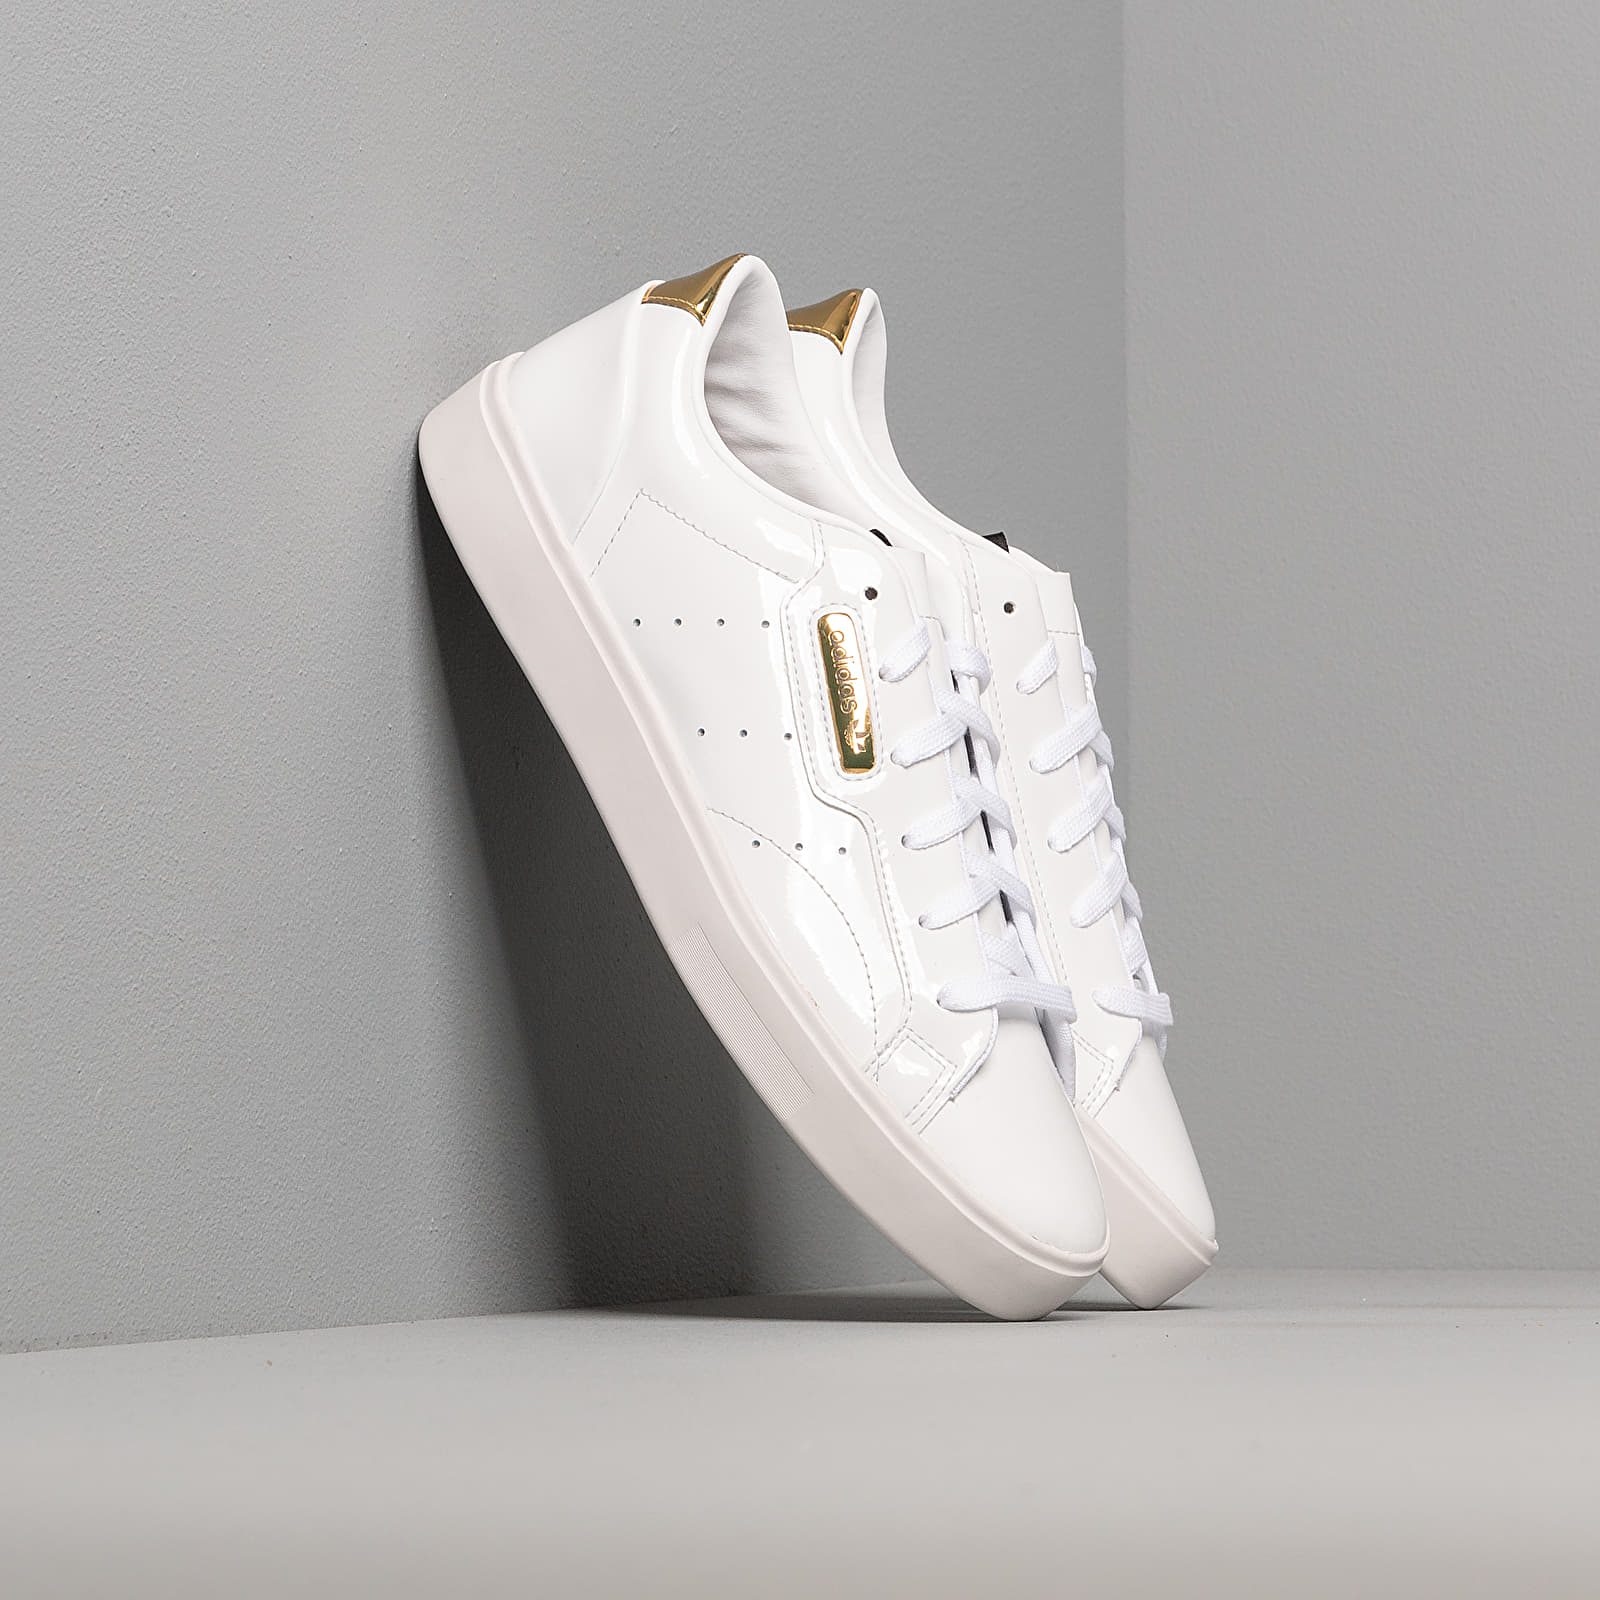 Жіноче взуття adidas Sleek W Ftw White/ Crystal White/ Gold Metalic